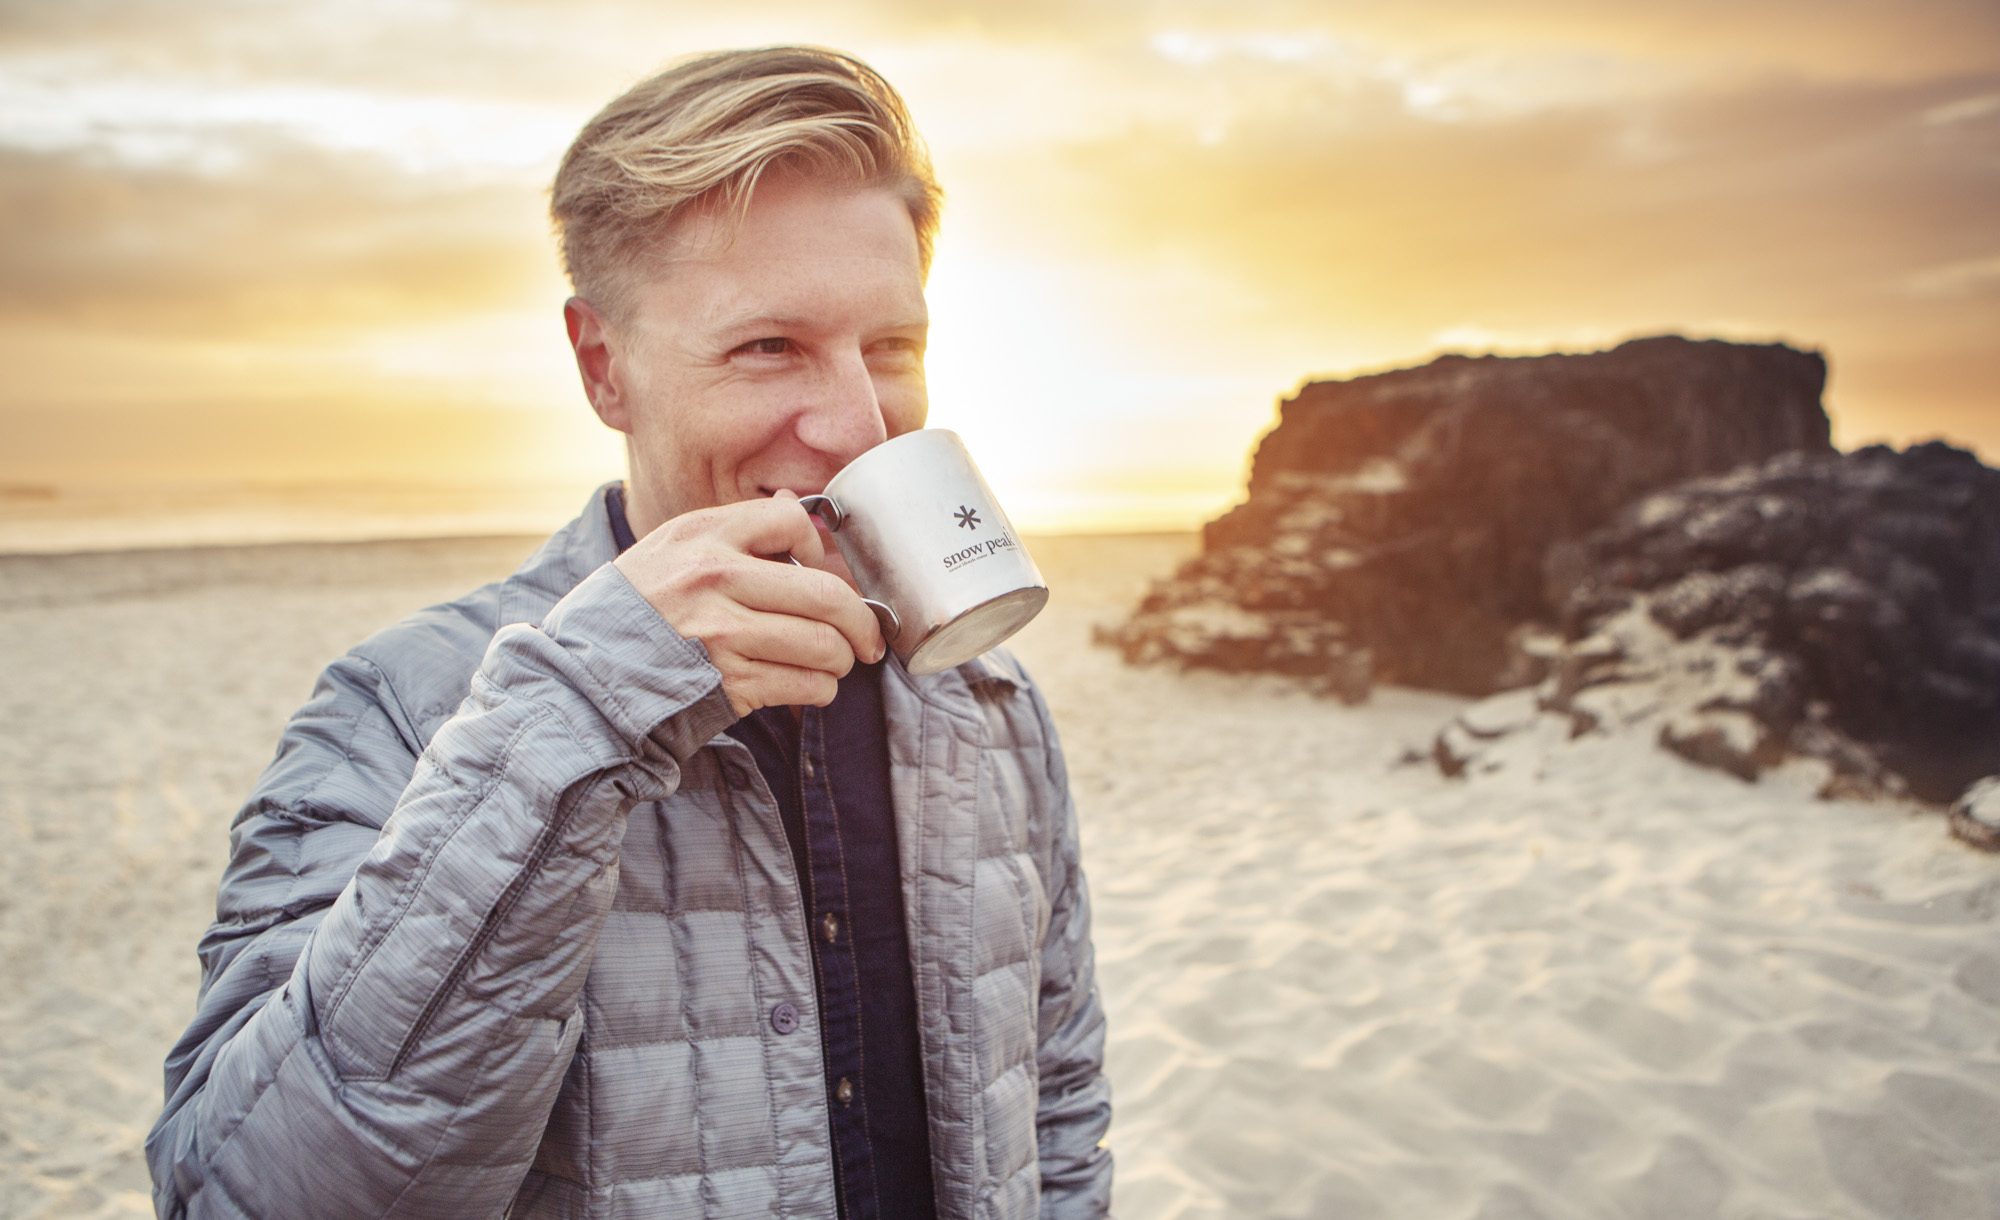 Man enjoys cup of coffee